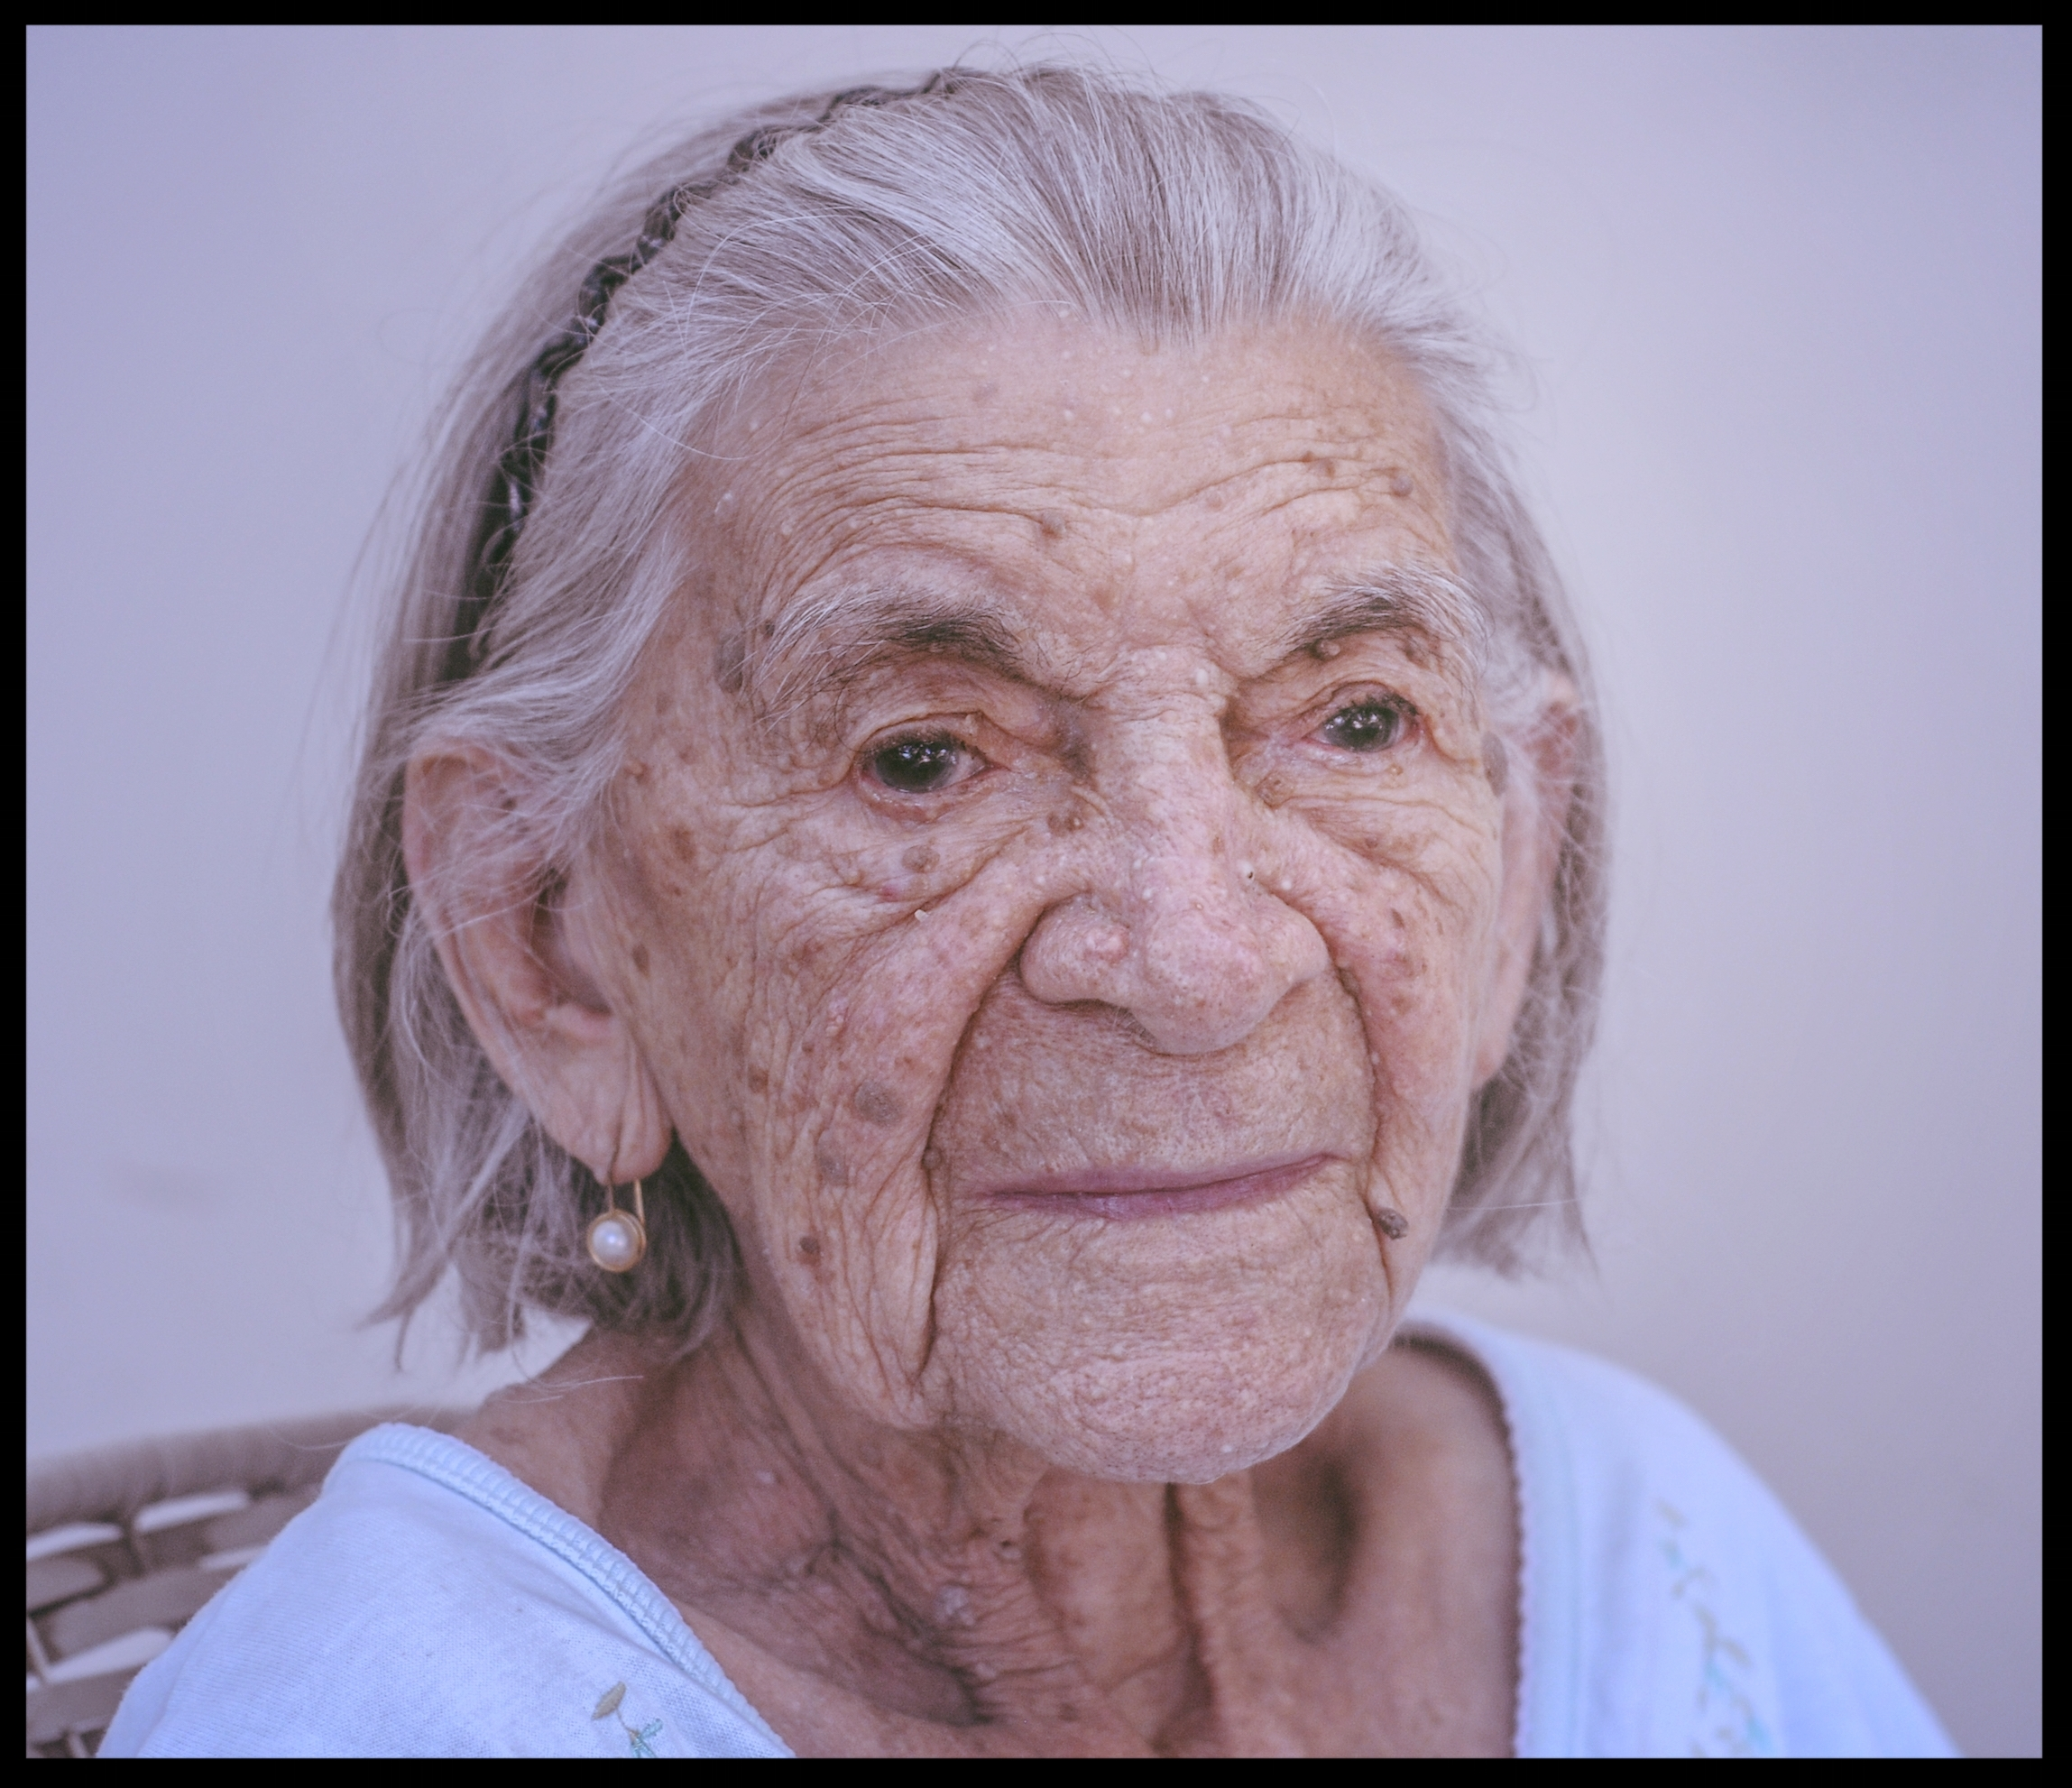 Non-verbal Communication Skills - REACHING TOWARDS DEEPER LEVELS OF COMMUNICATION & CONNECTING TO PEOPLE WITH ADVANCE DEMENTIA